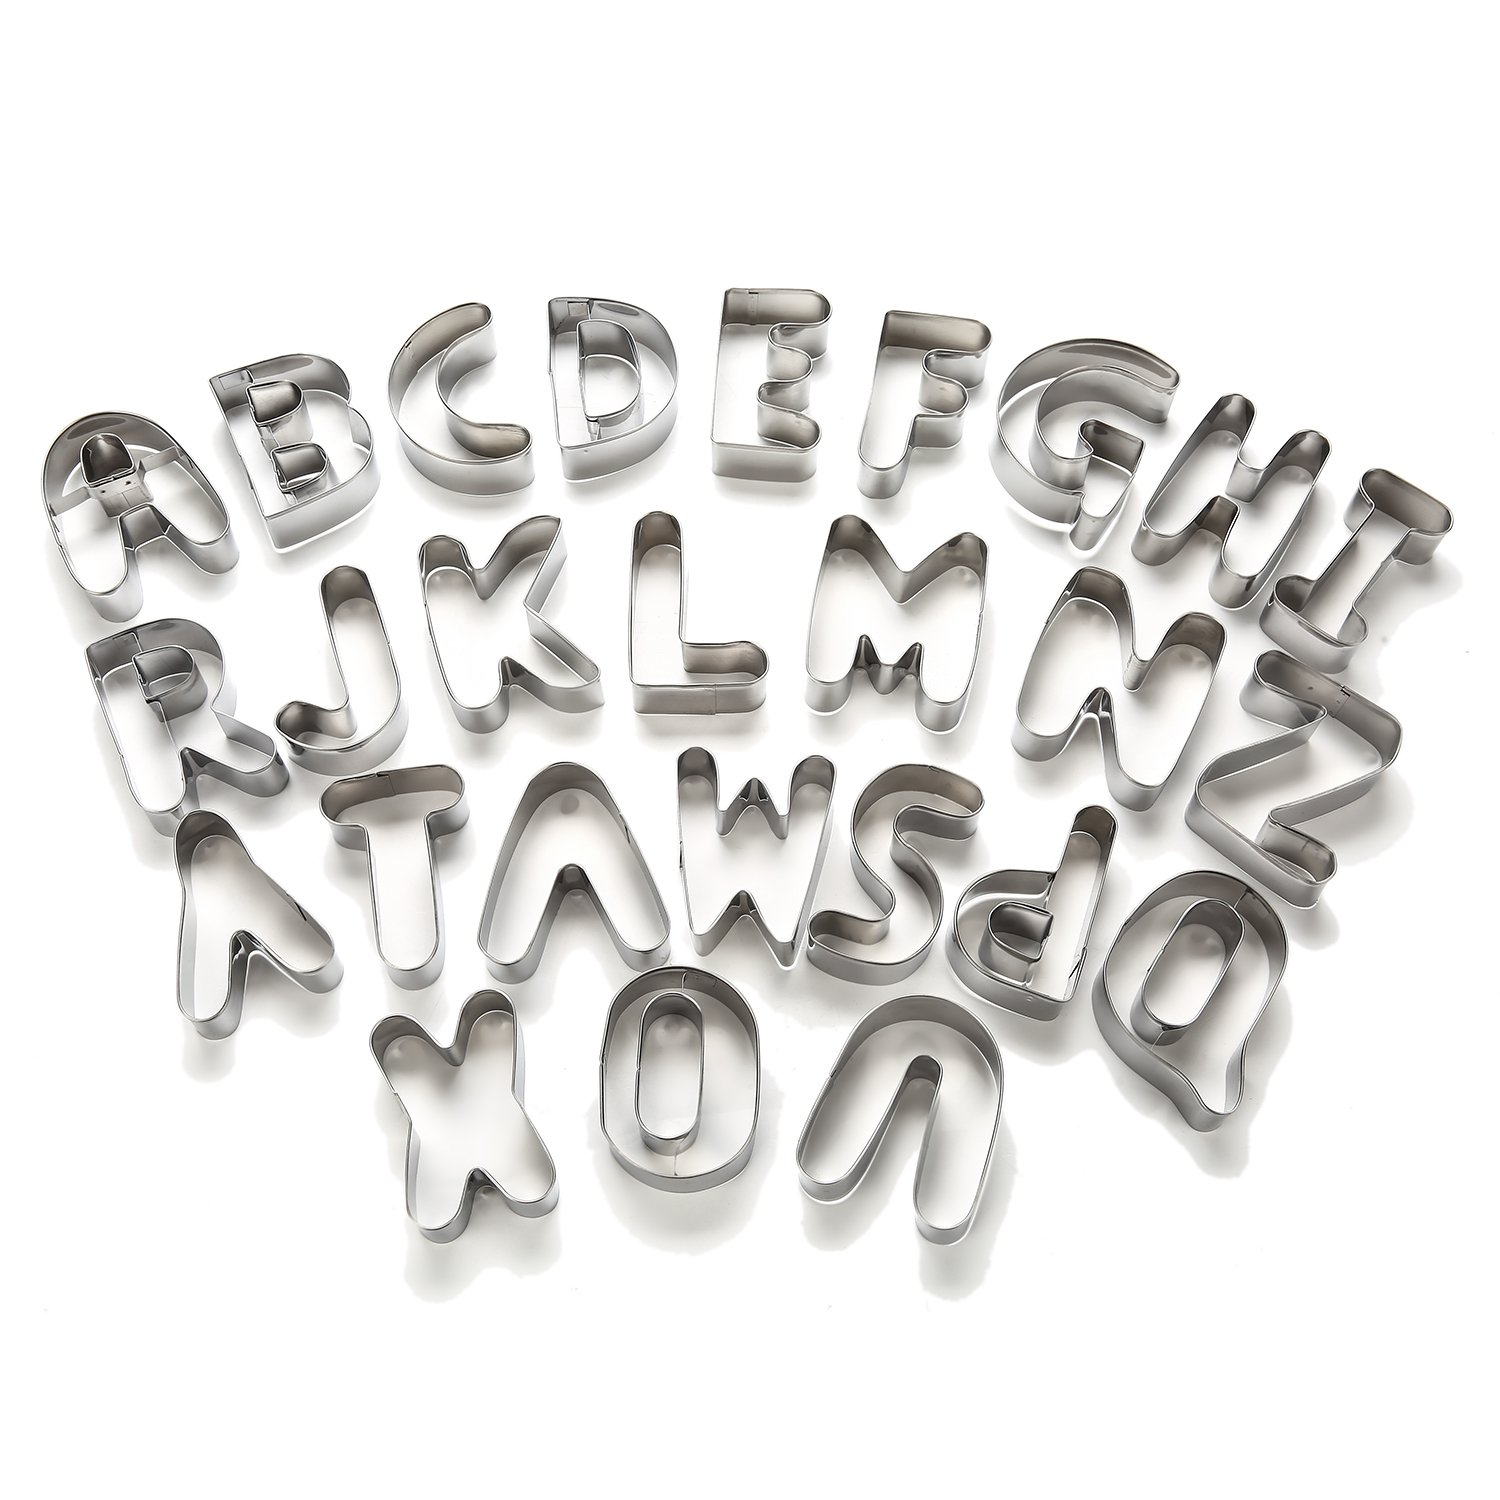 3'' Large Alphabet Letter Cookie Cutters Set Biscuit Snowman Pumpkin Moon Ghosts Variety Of Graphics Cookie Cutter Shape Mold Set Jelly Fondant Sugar Stamp Impress Embosser (Large Letter A-Z) by FUBARBAR FUNNY PLACE TO STAY (Image #3)